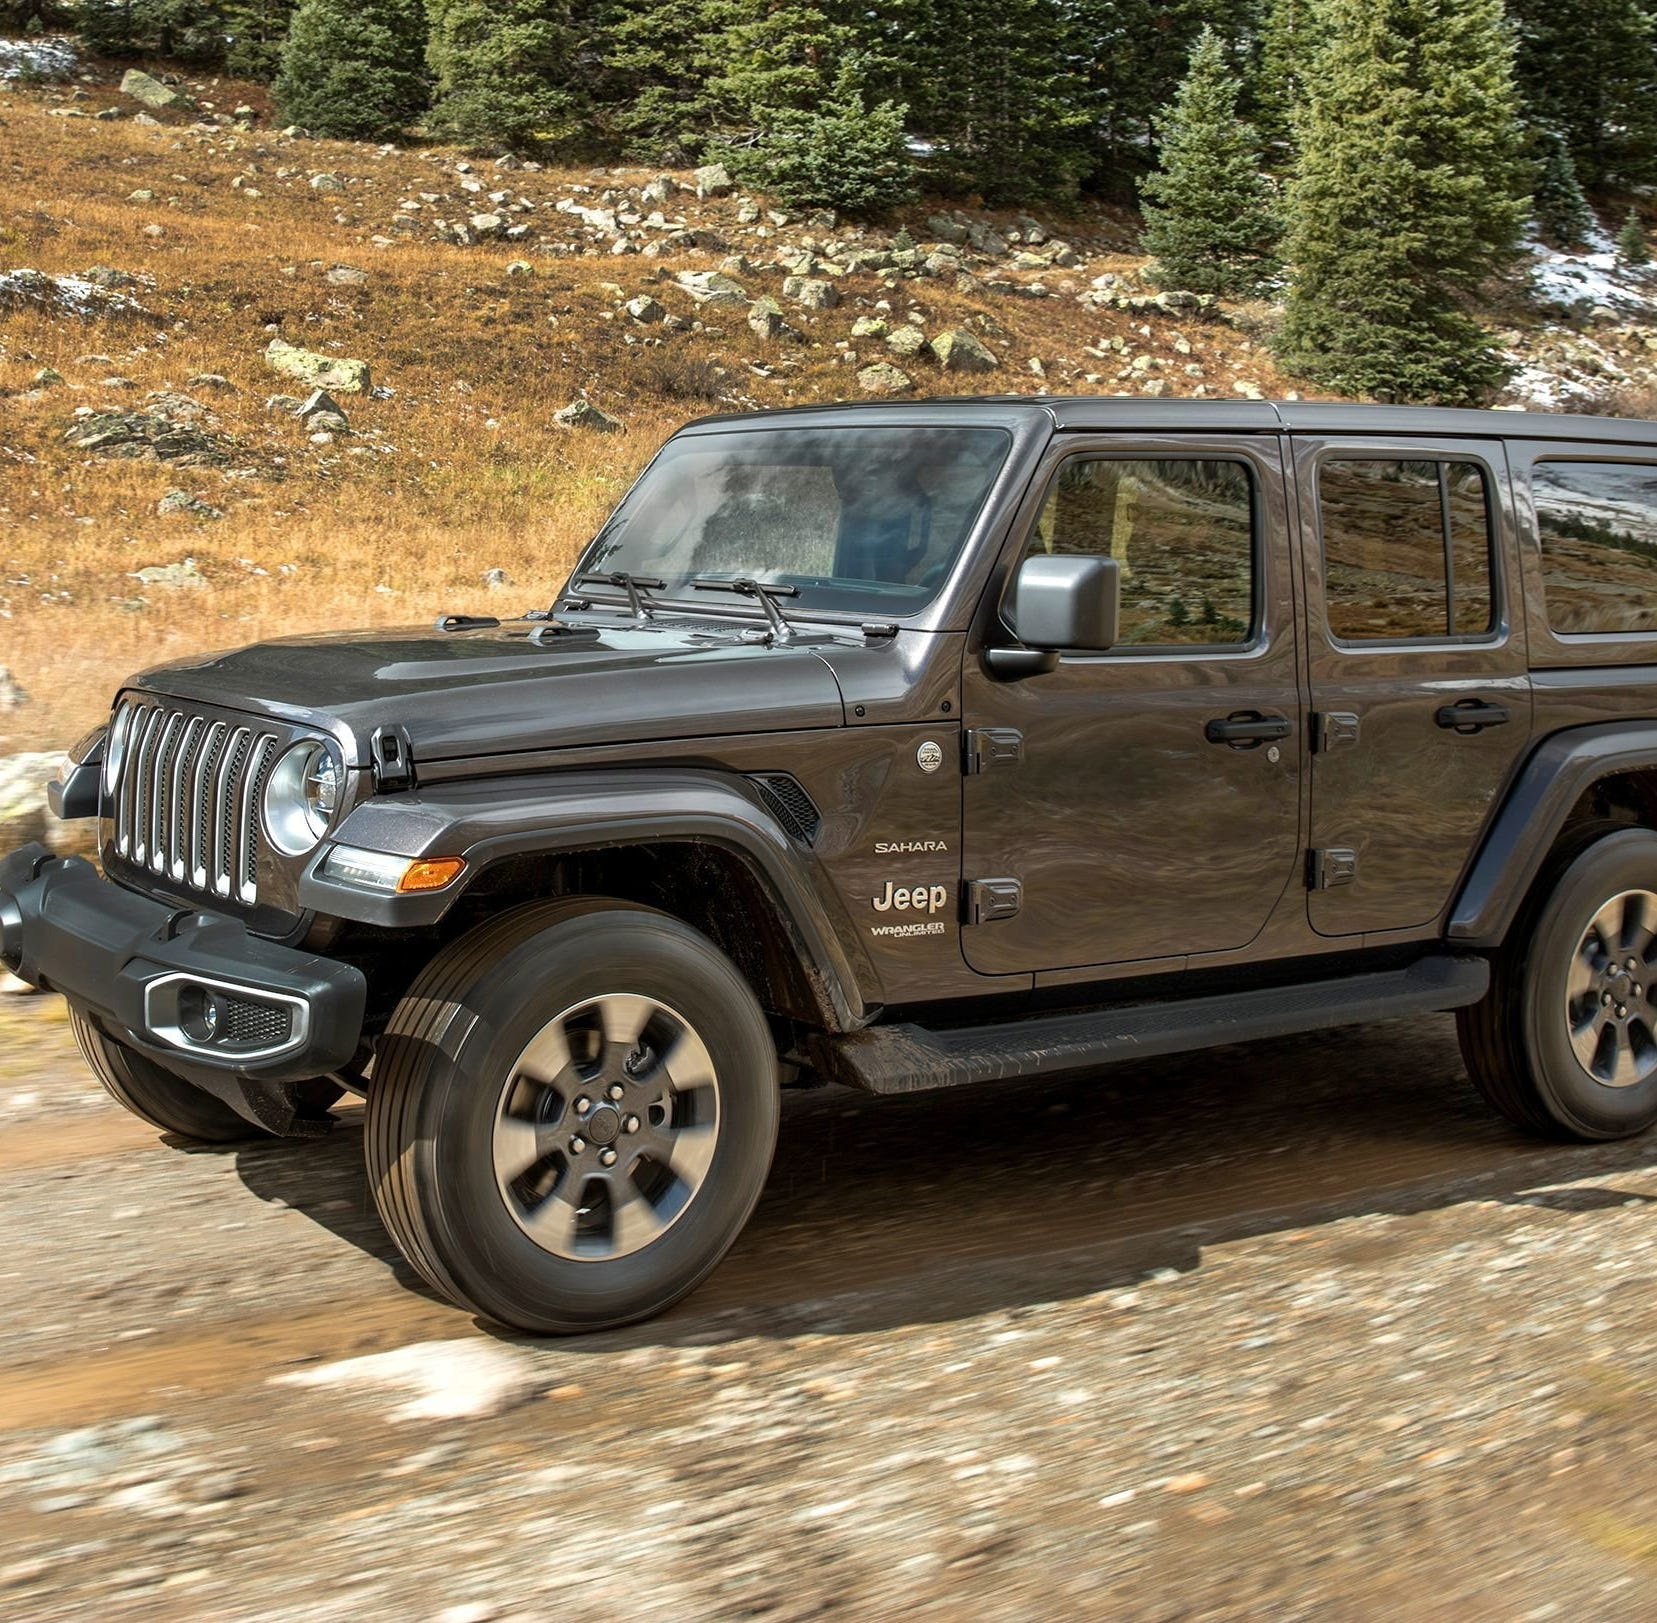 Jeep Wrangler drivers report 'death wobble' on highways